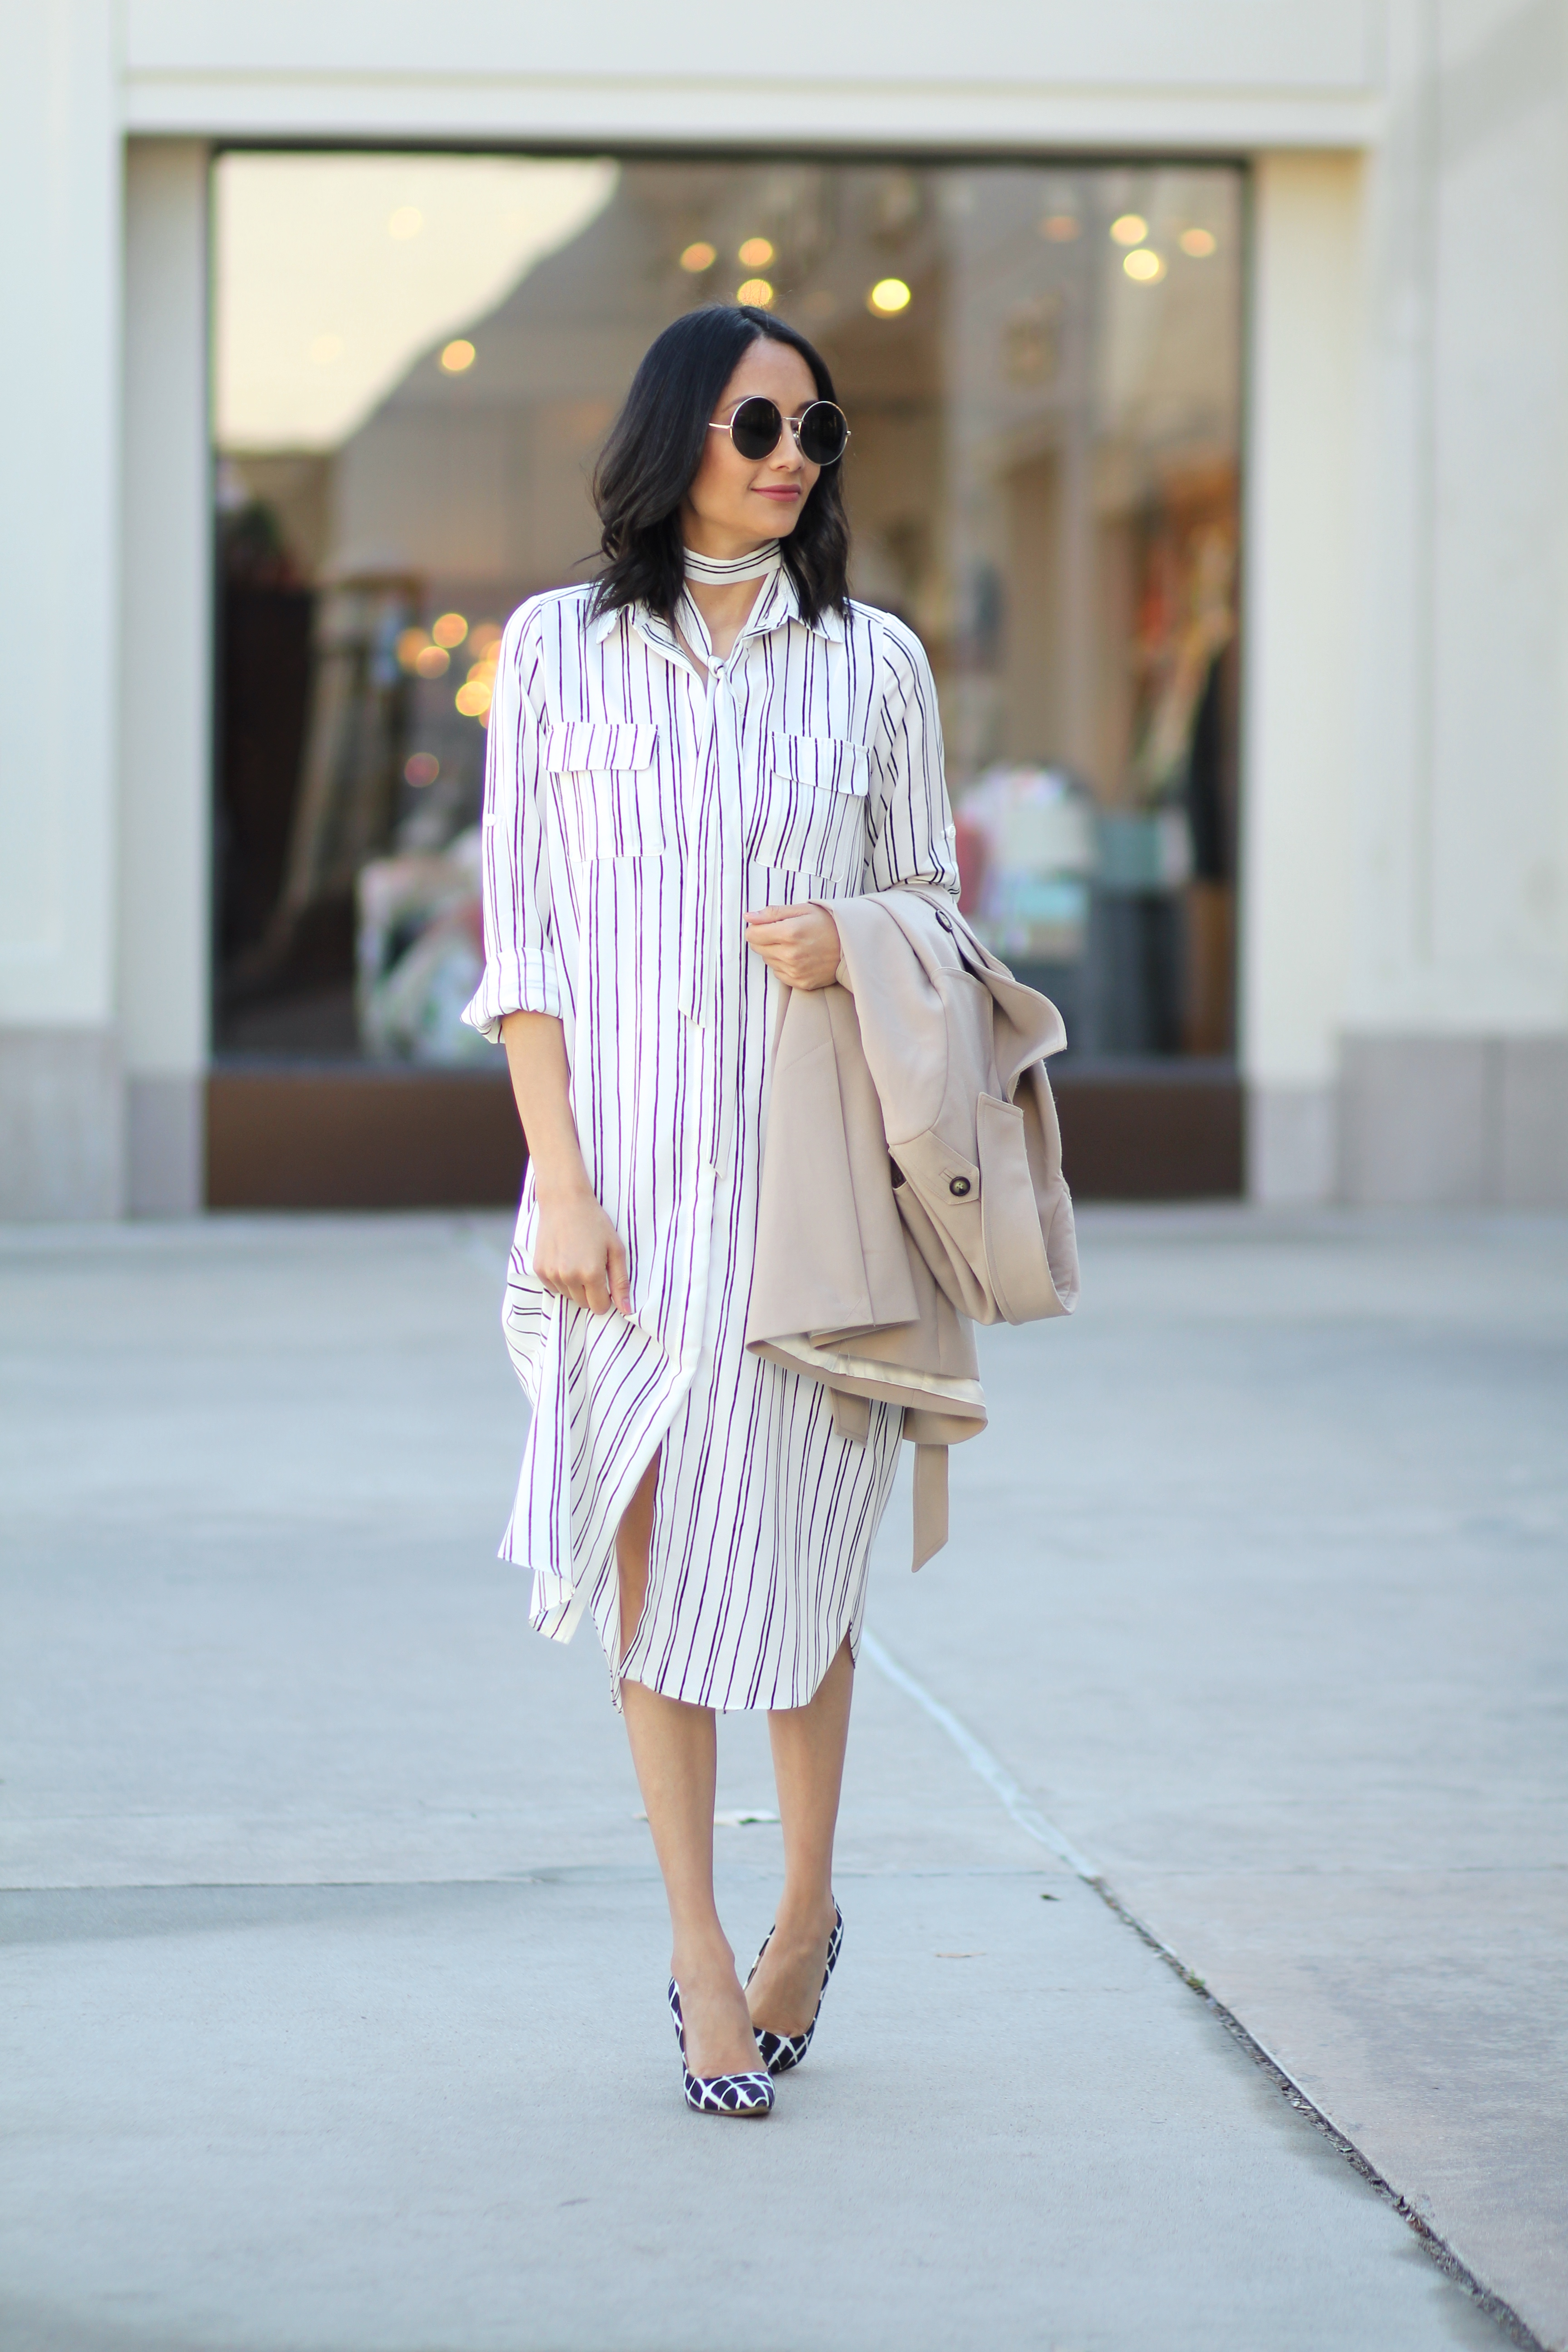 Pinstripe dress outfit idea